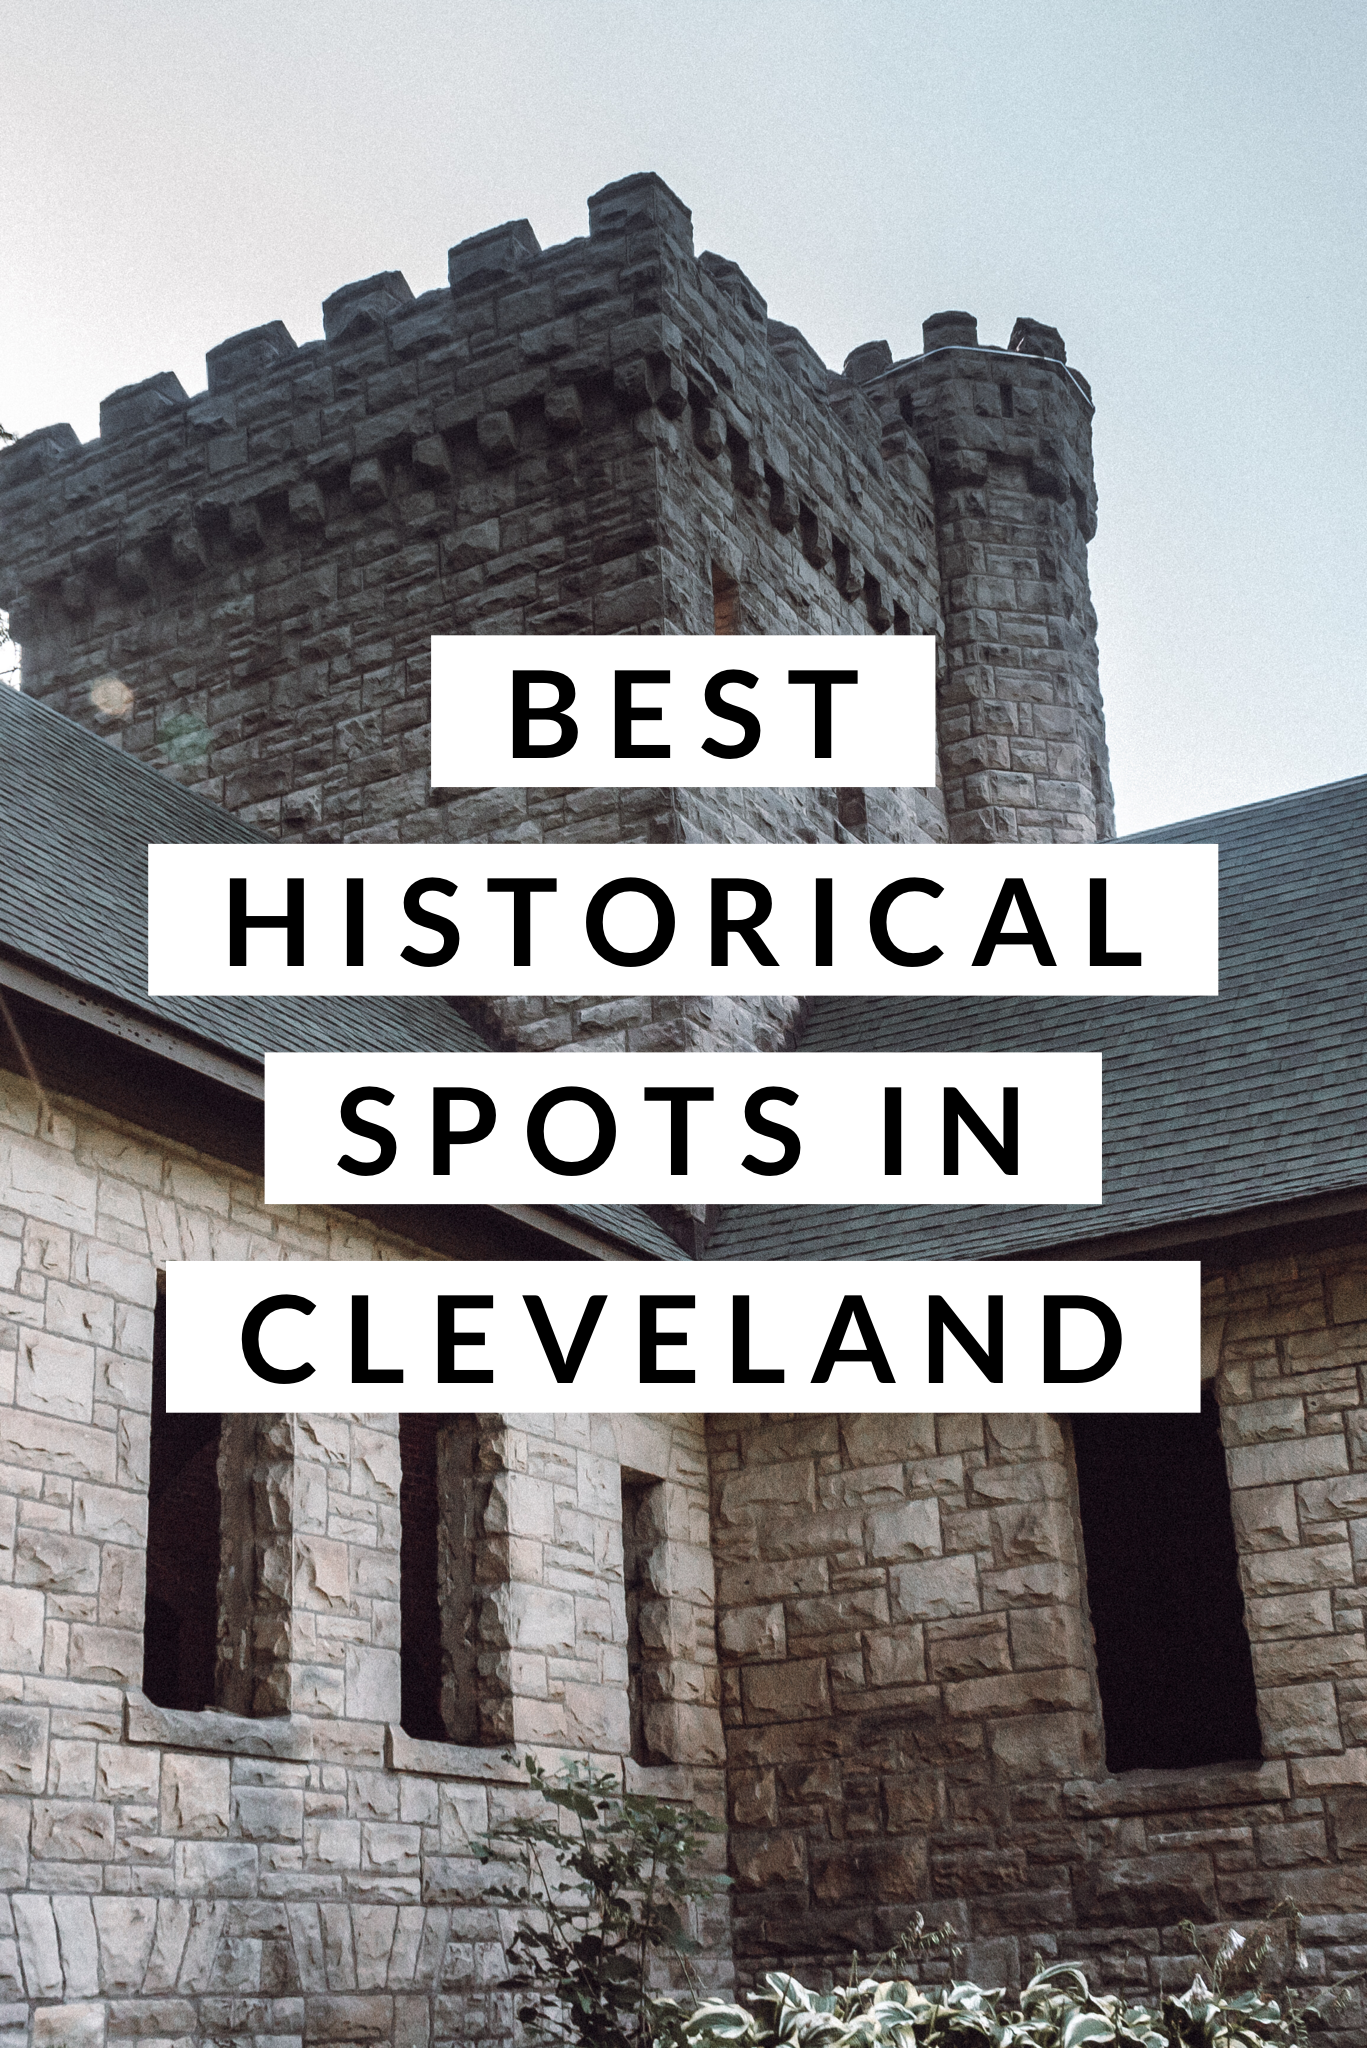 The Best Historical Spots In Cleveland Cleveland Travel Ohio